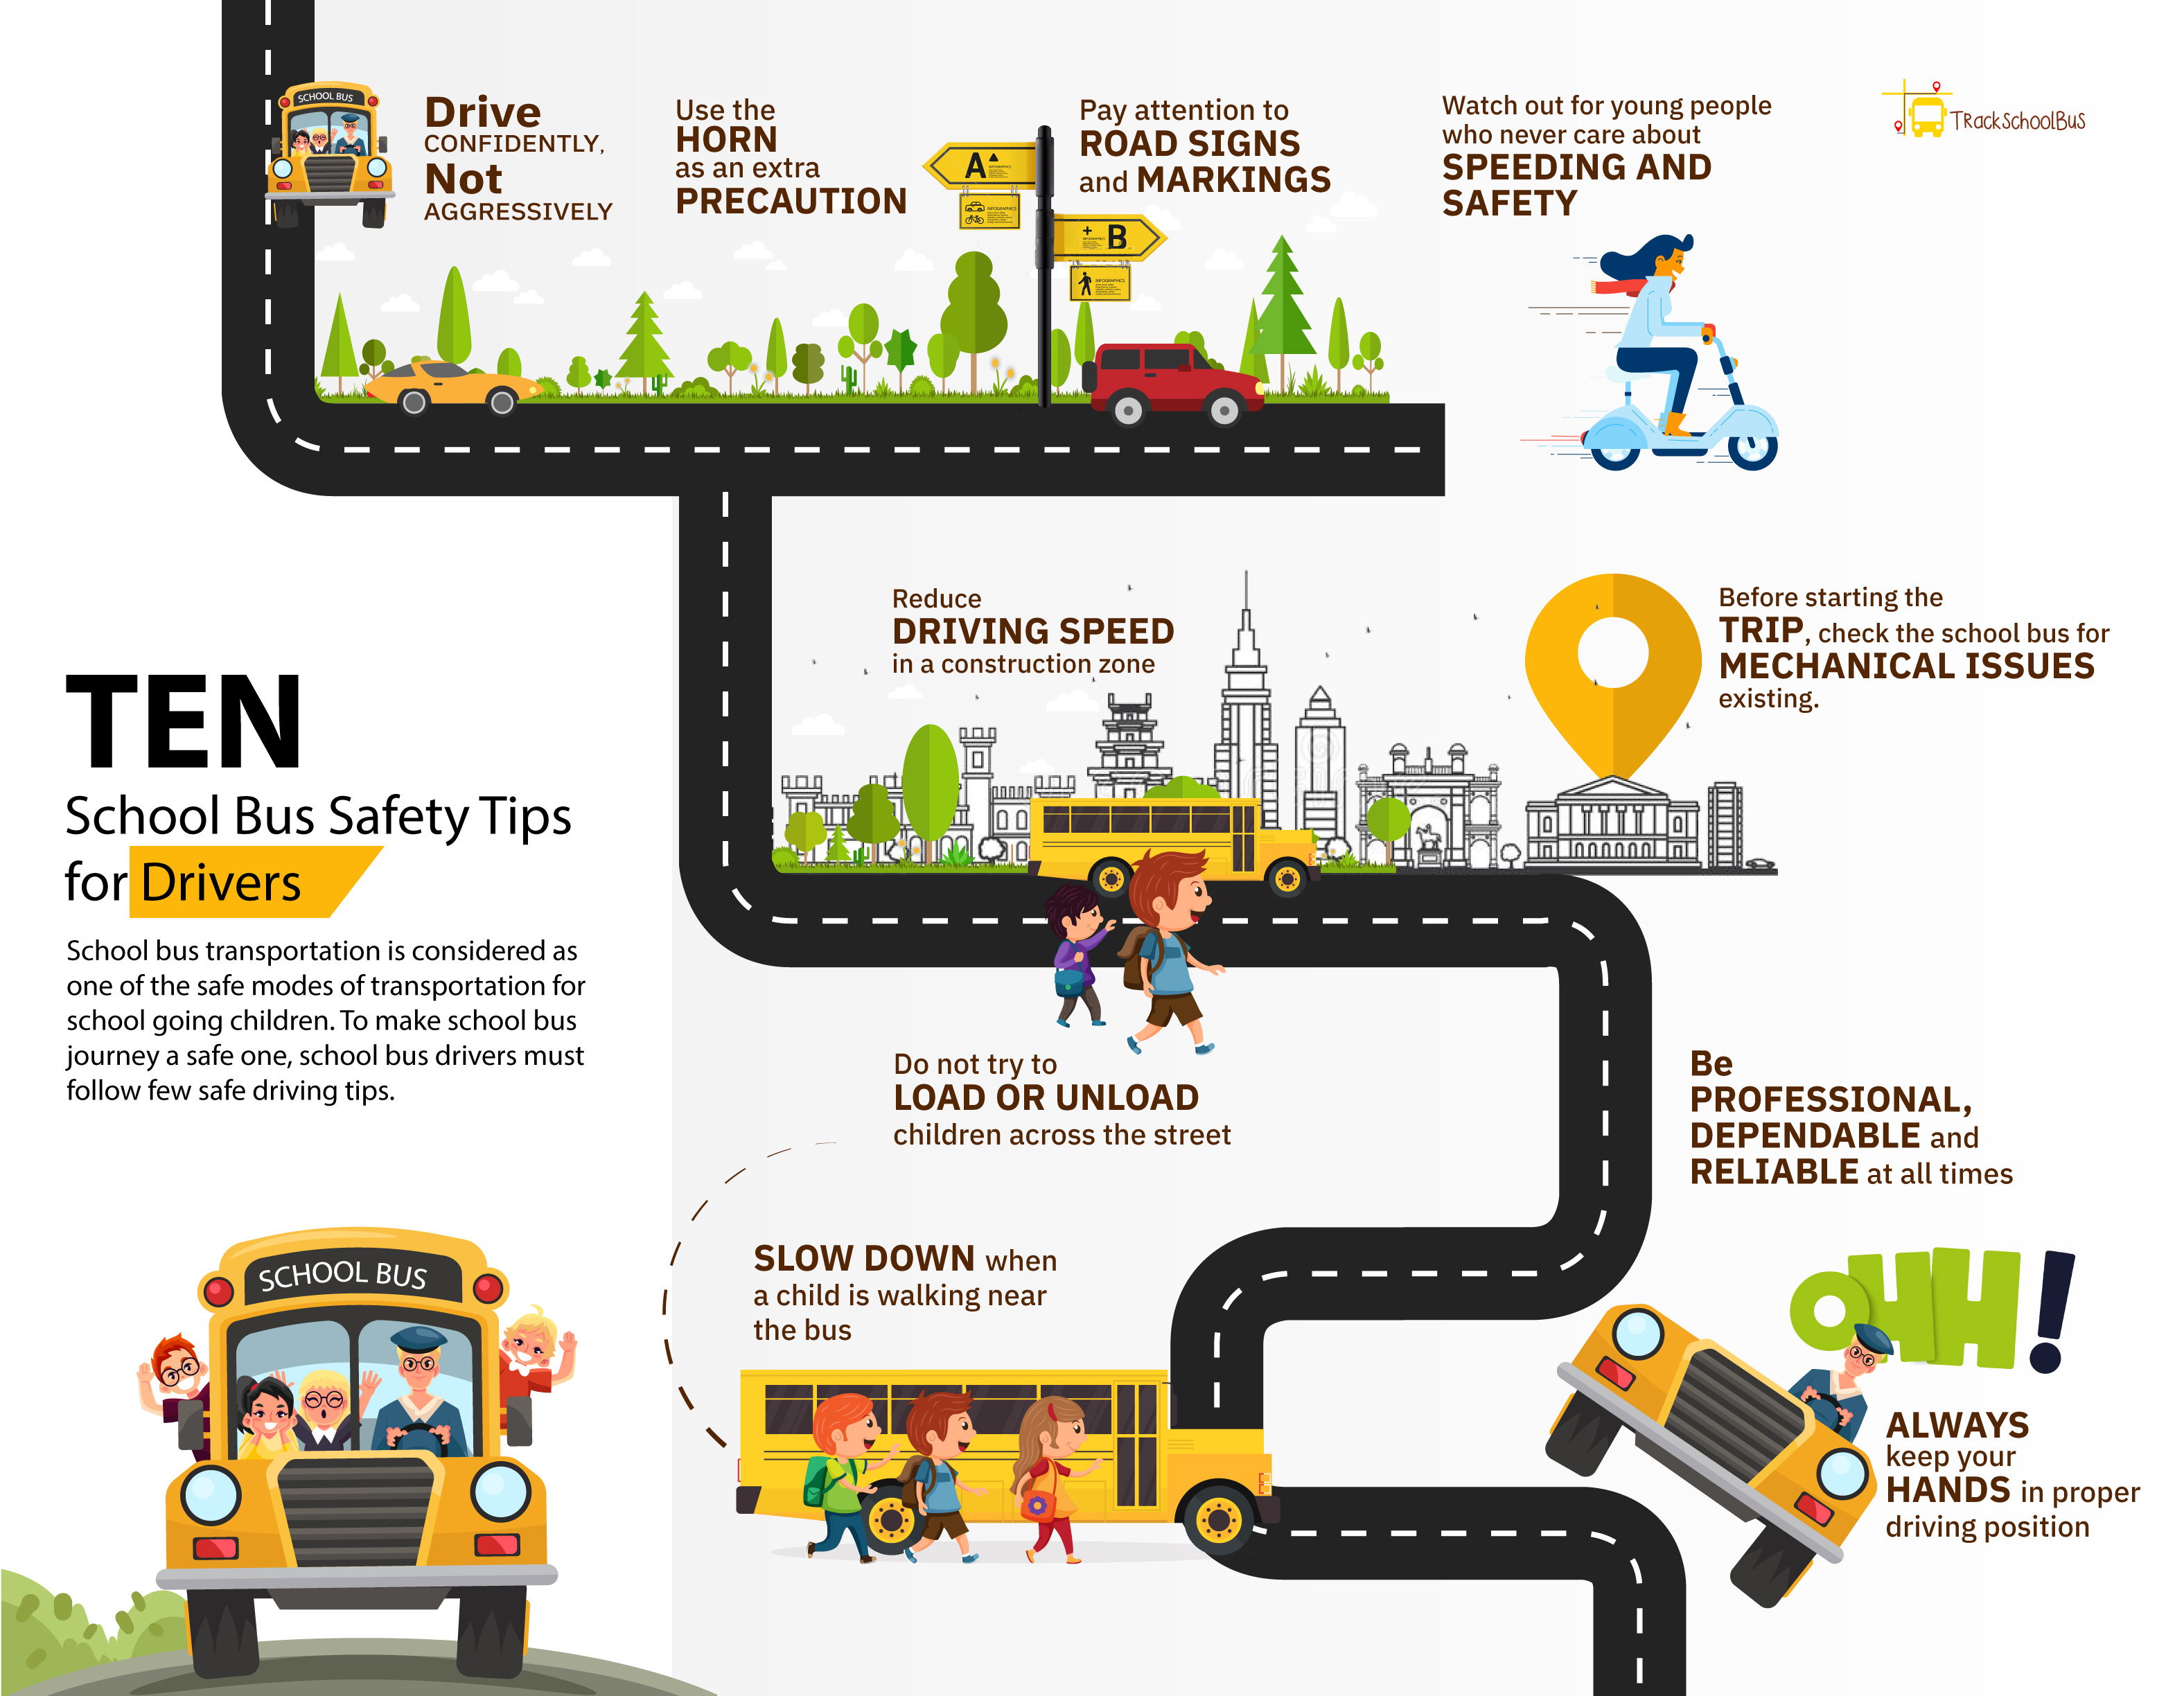 10 School Bus Safety Tips for Drivers infographic